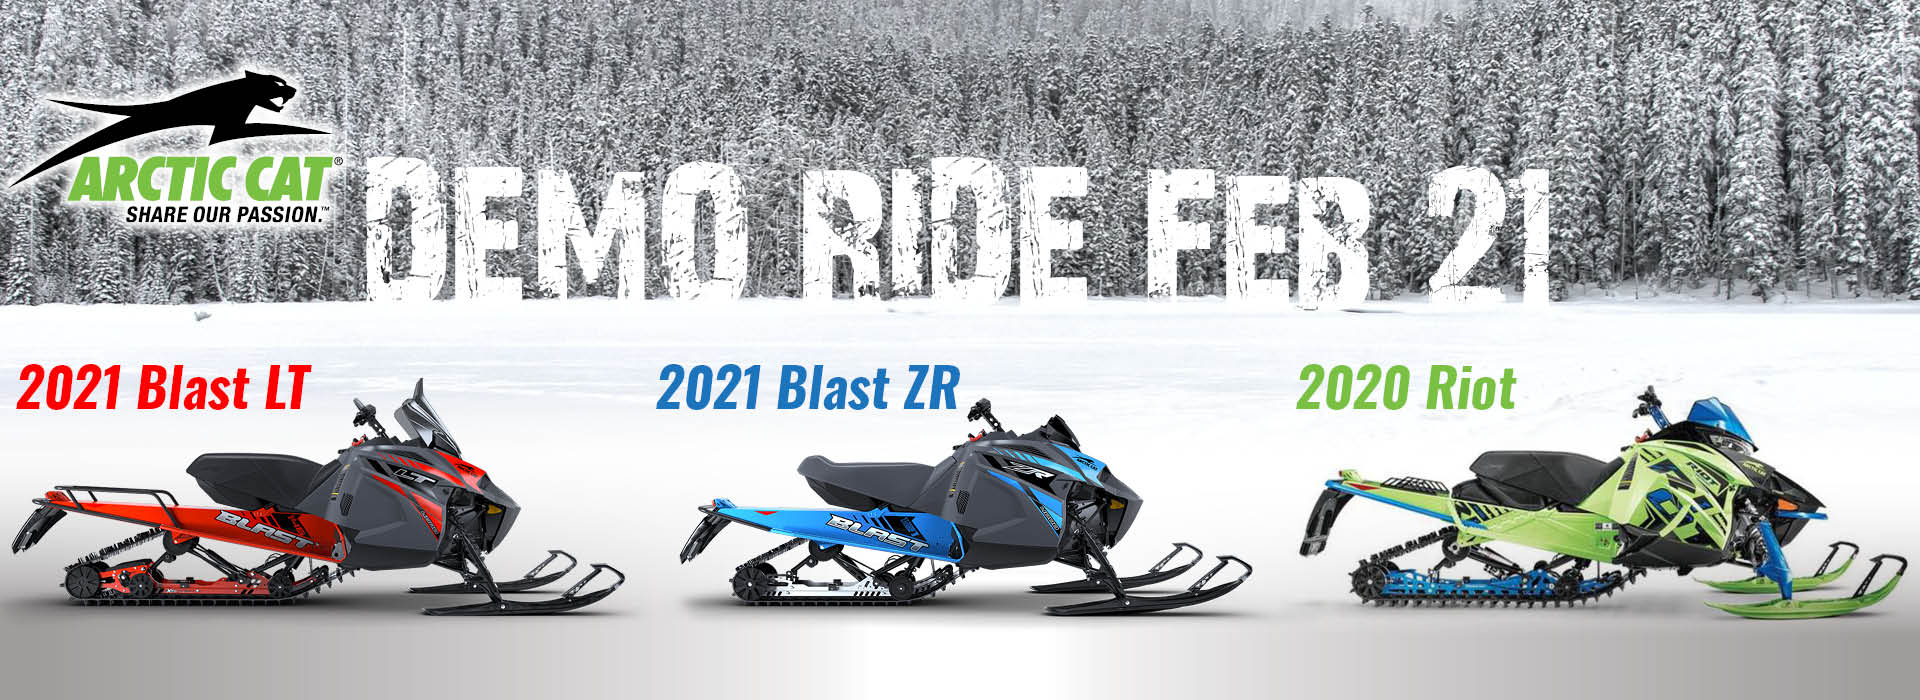 DEMO RIDE FRIDAY FEBRUARY 21